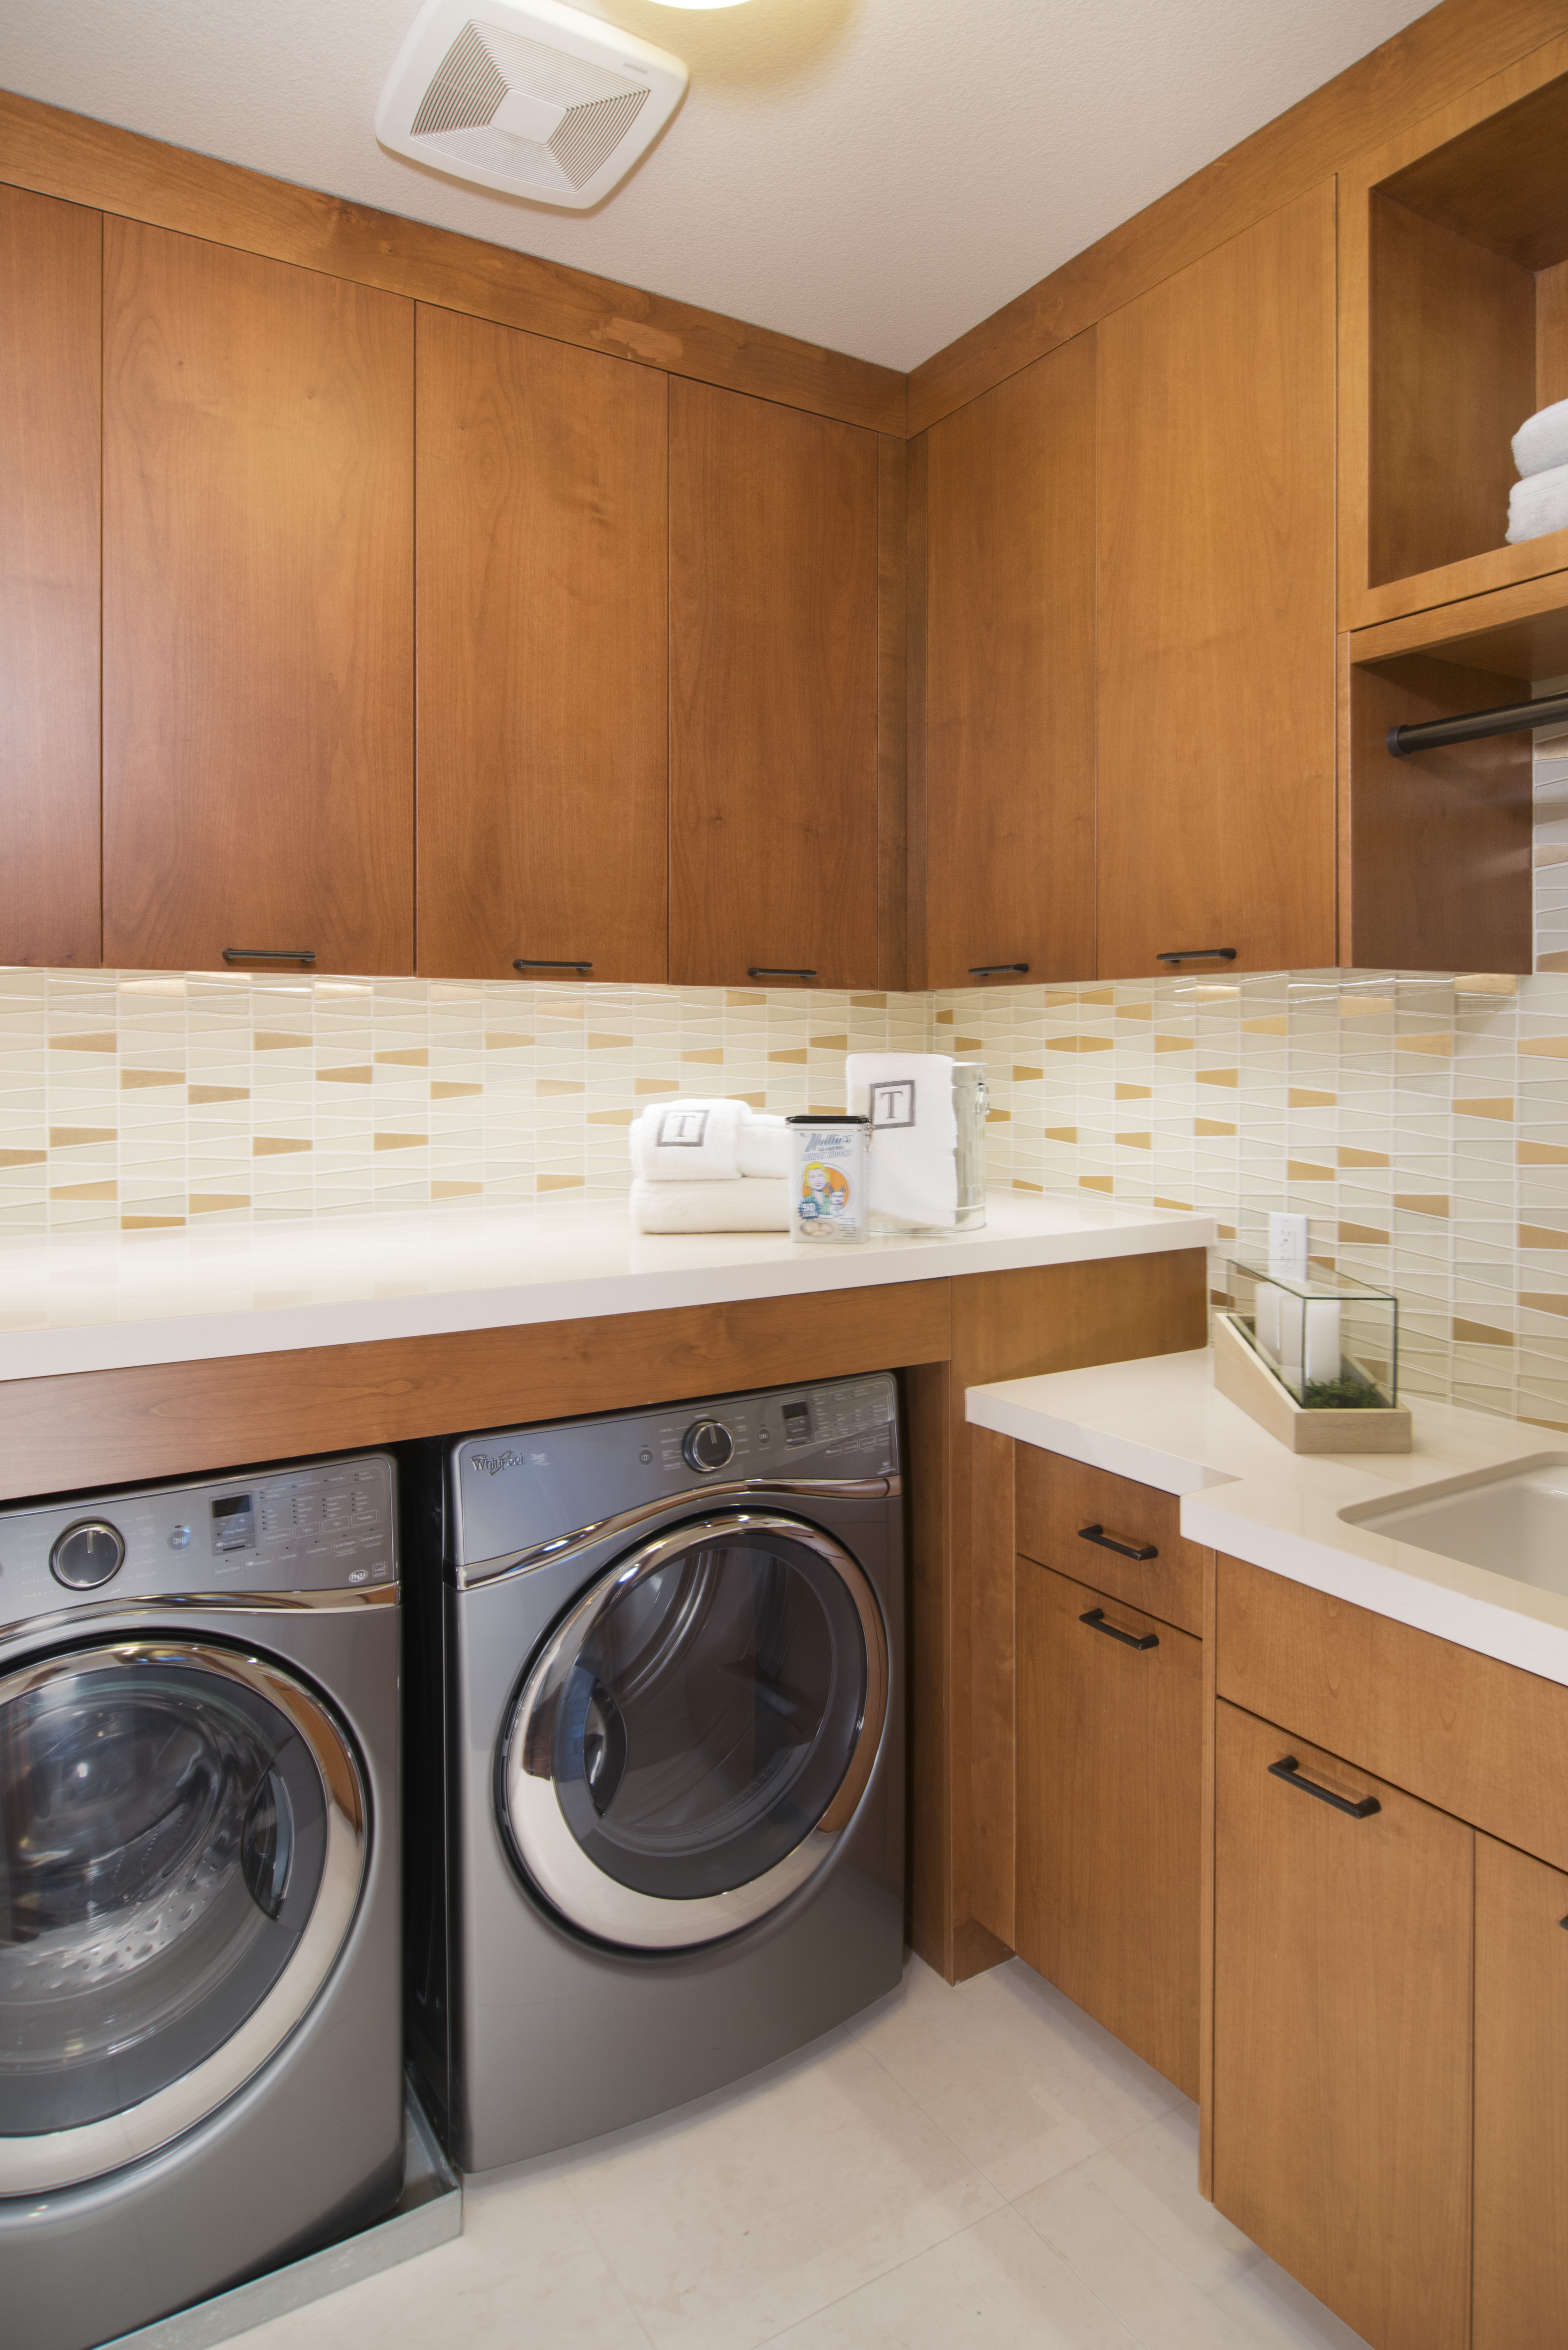 Beautiful Contemporary Laundry Room with a White Counter Top and a Stainless Steel Washer - Dryer